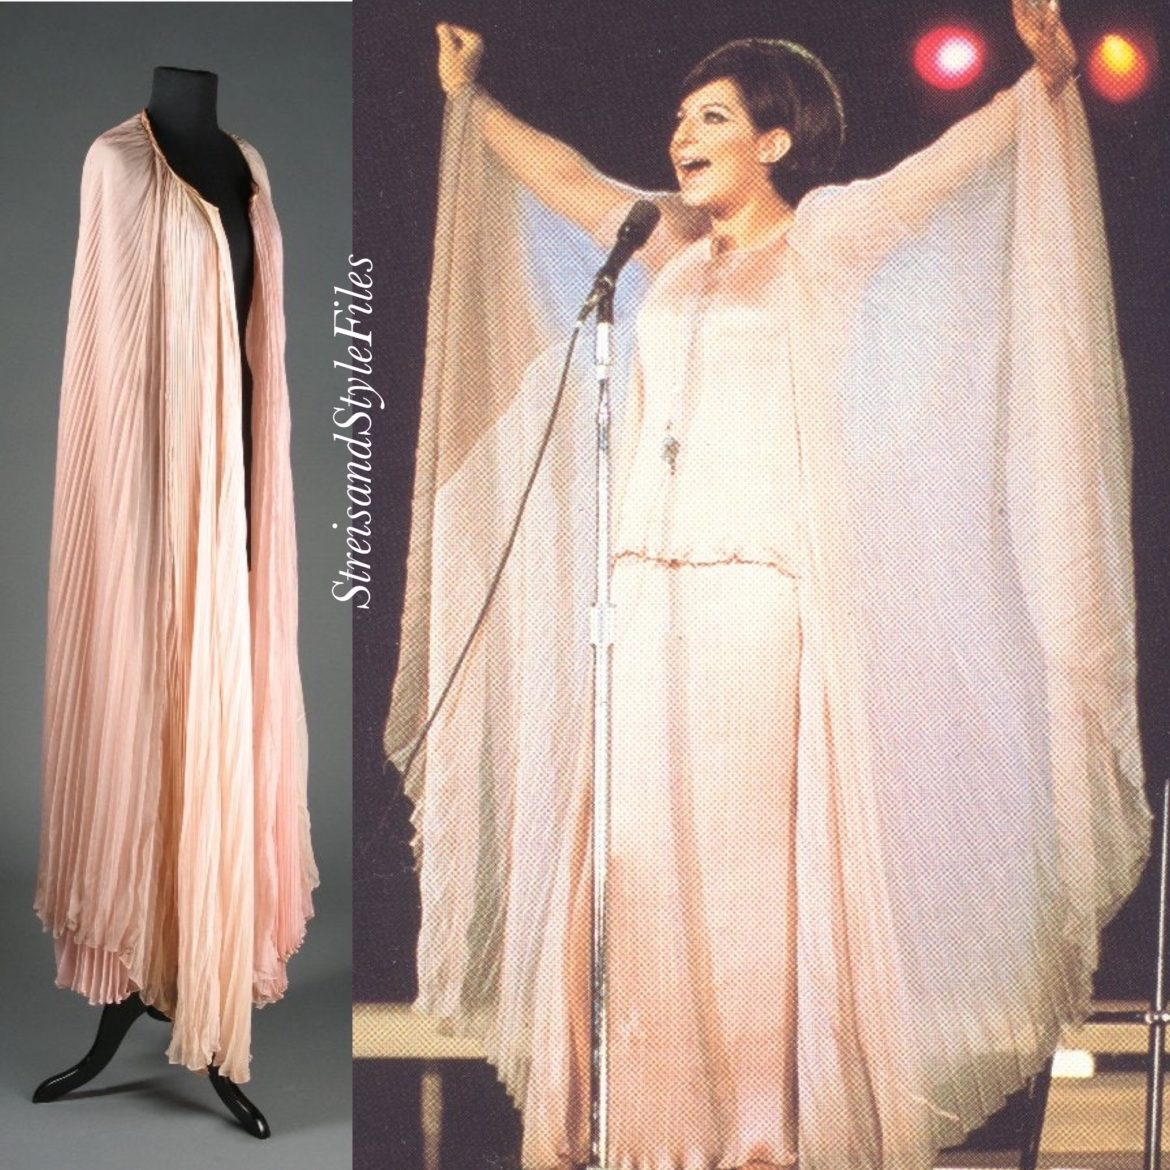 A Happening In Central Park Pink Fortuny Delphos Replica And Chiffon Cape by Irene Sharaff